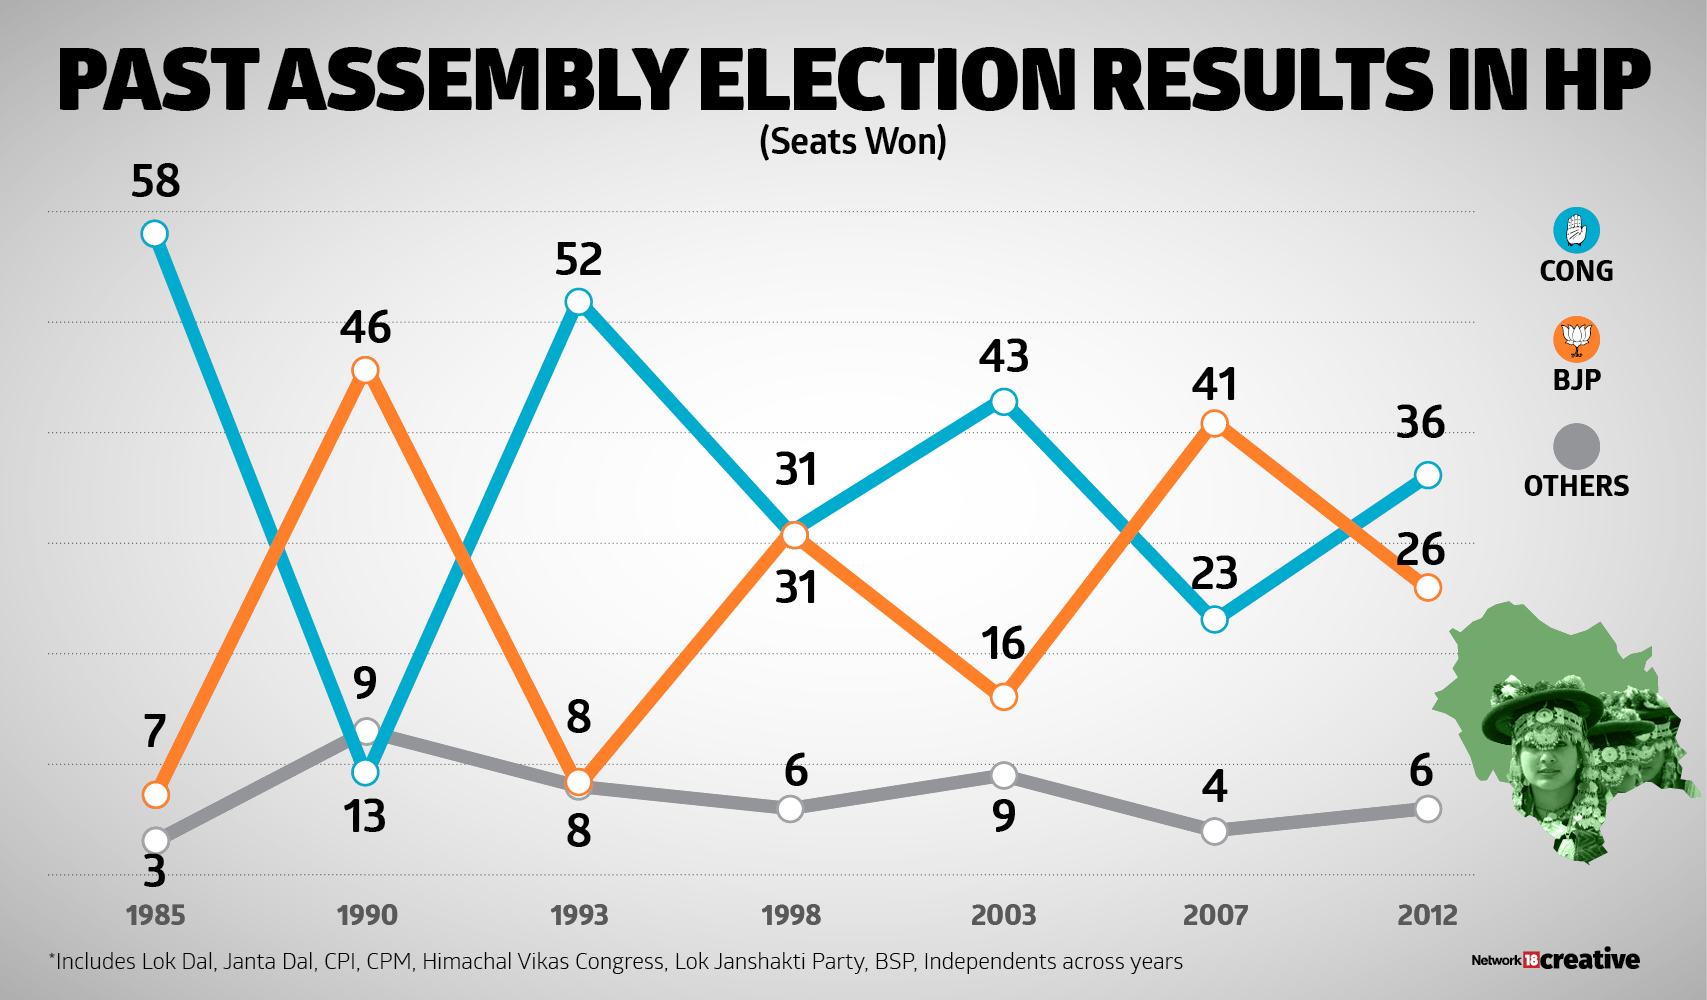 A chart showing past assembly election results in Himachal Pradesh